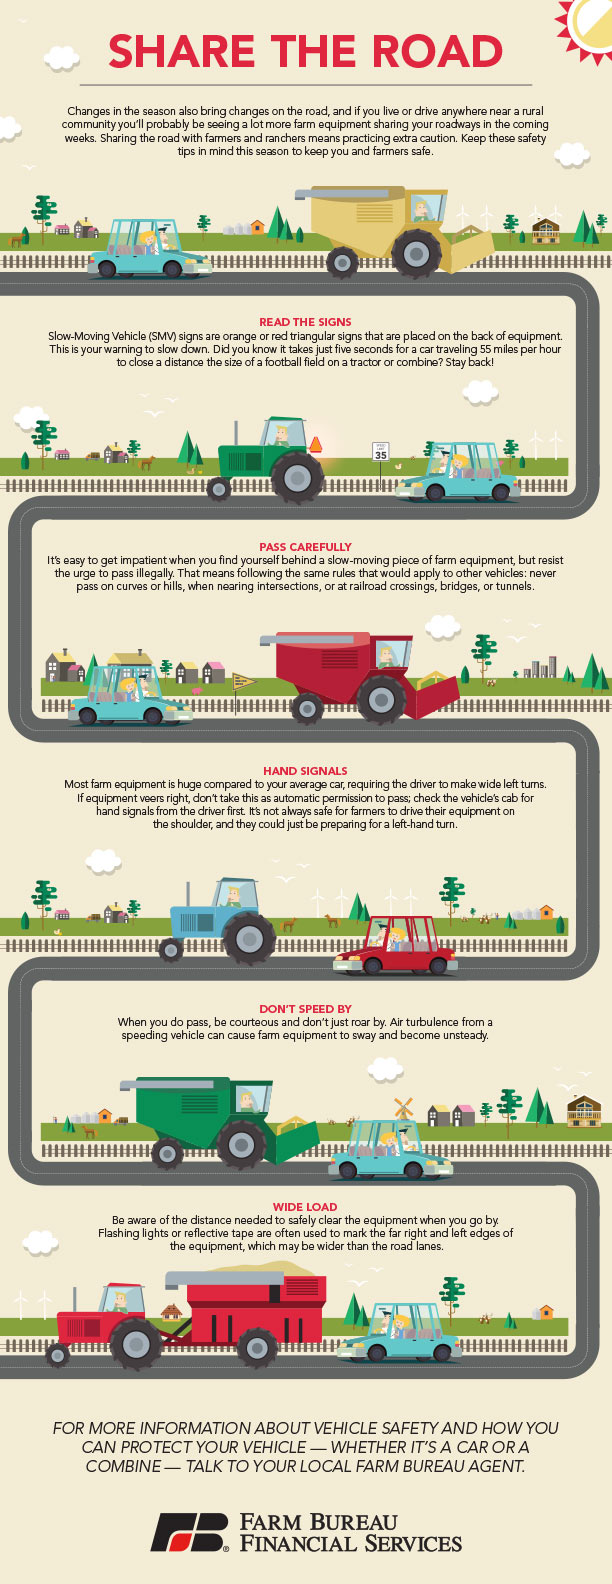 An infographic about sharing the road with farm vehicles